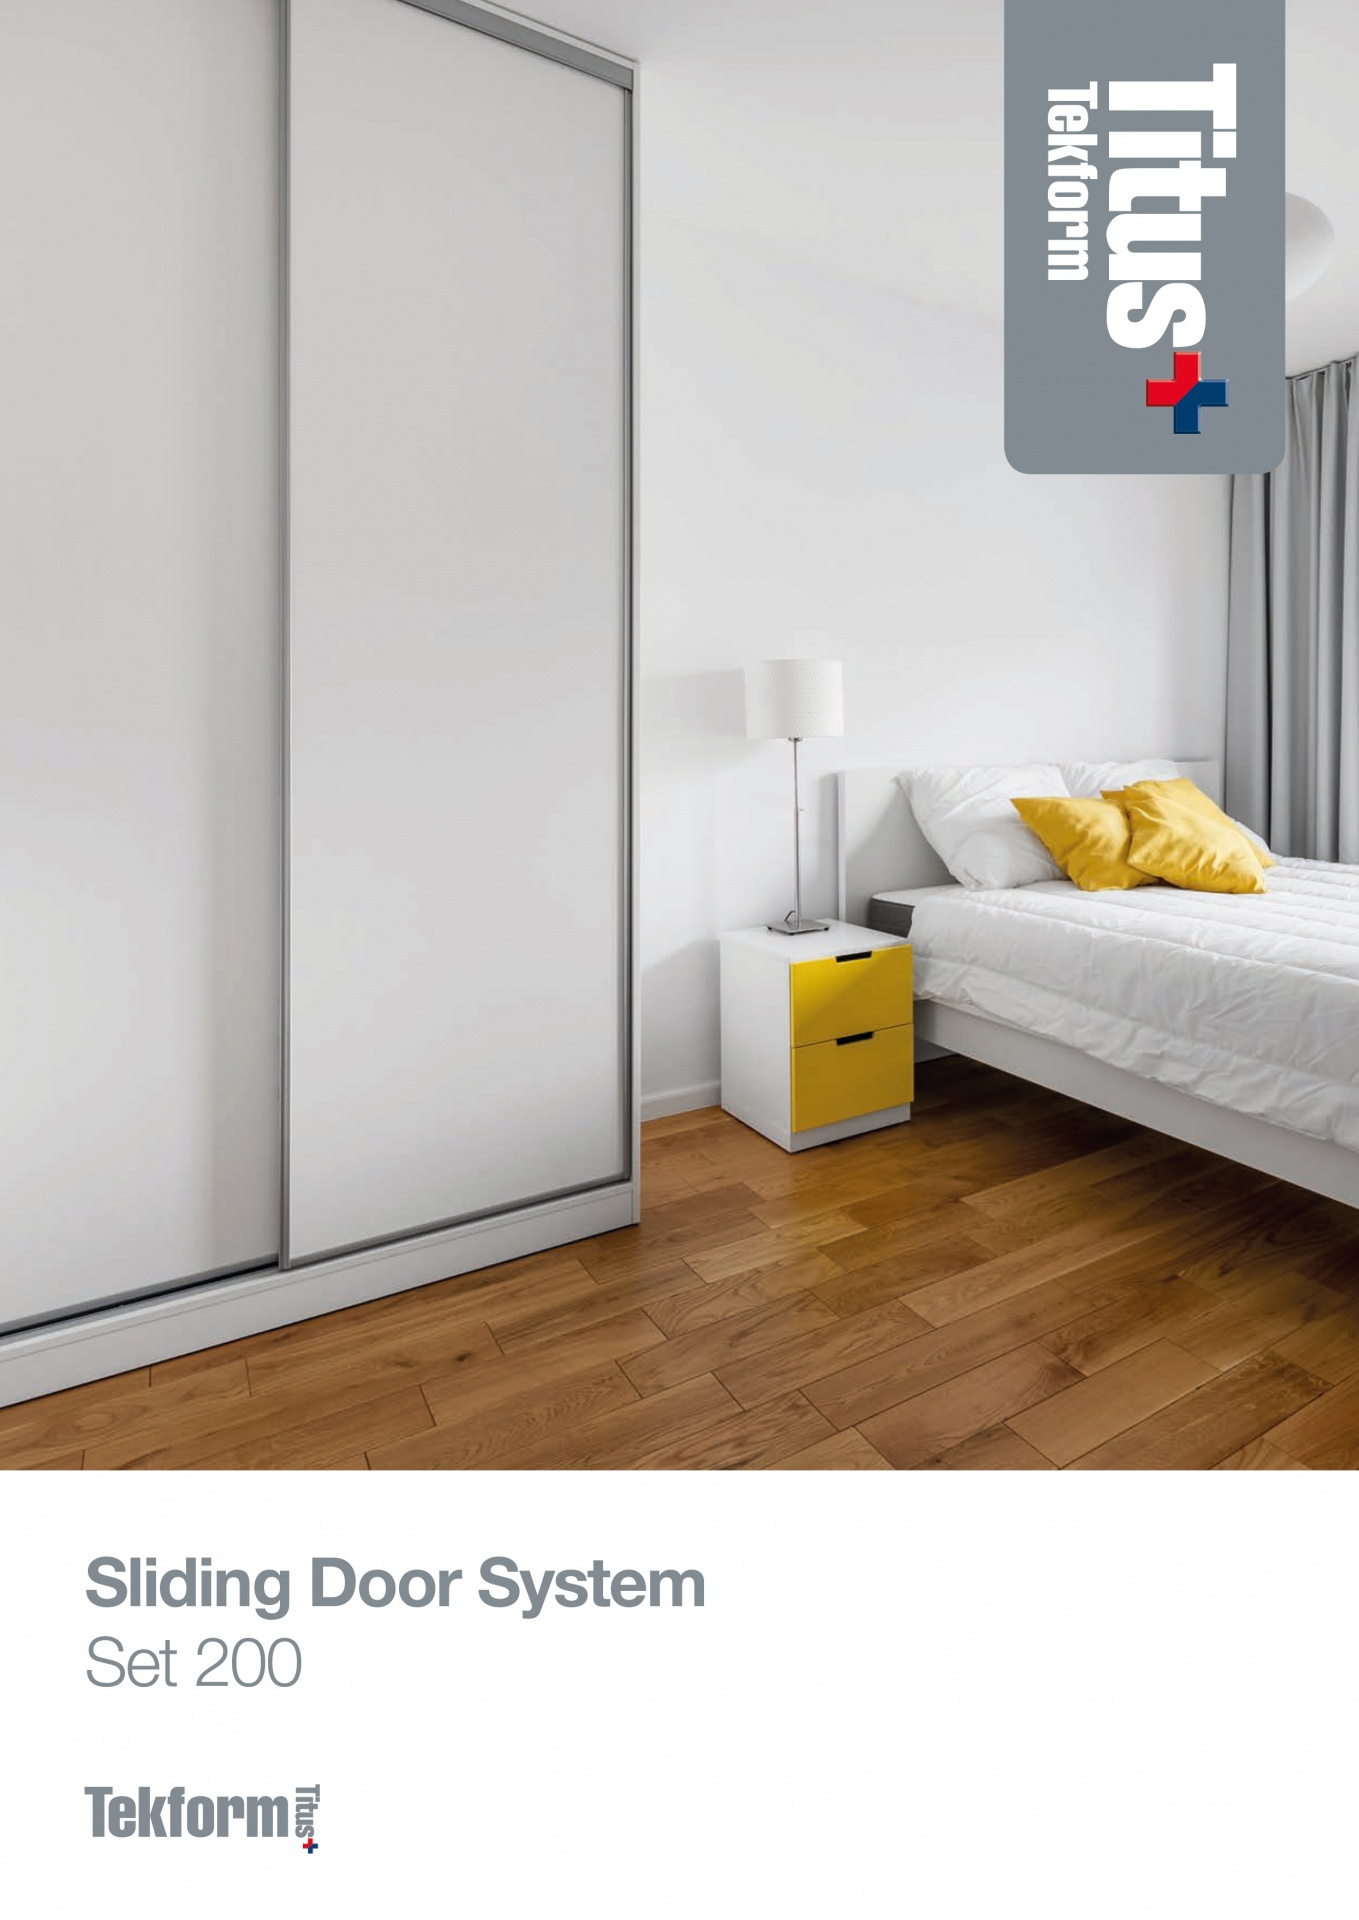 Set 200 Sliding Door Catalogue